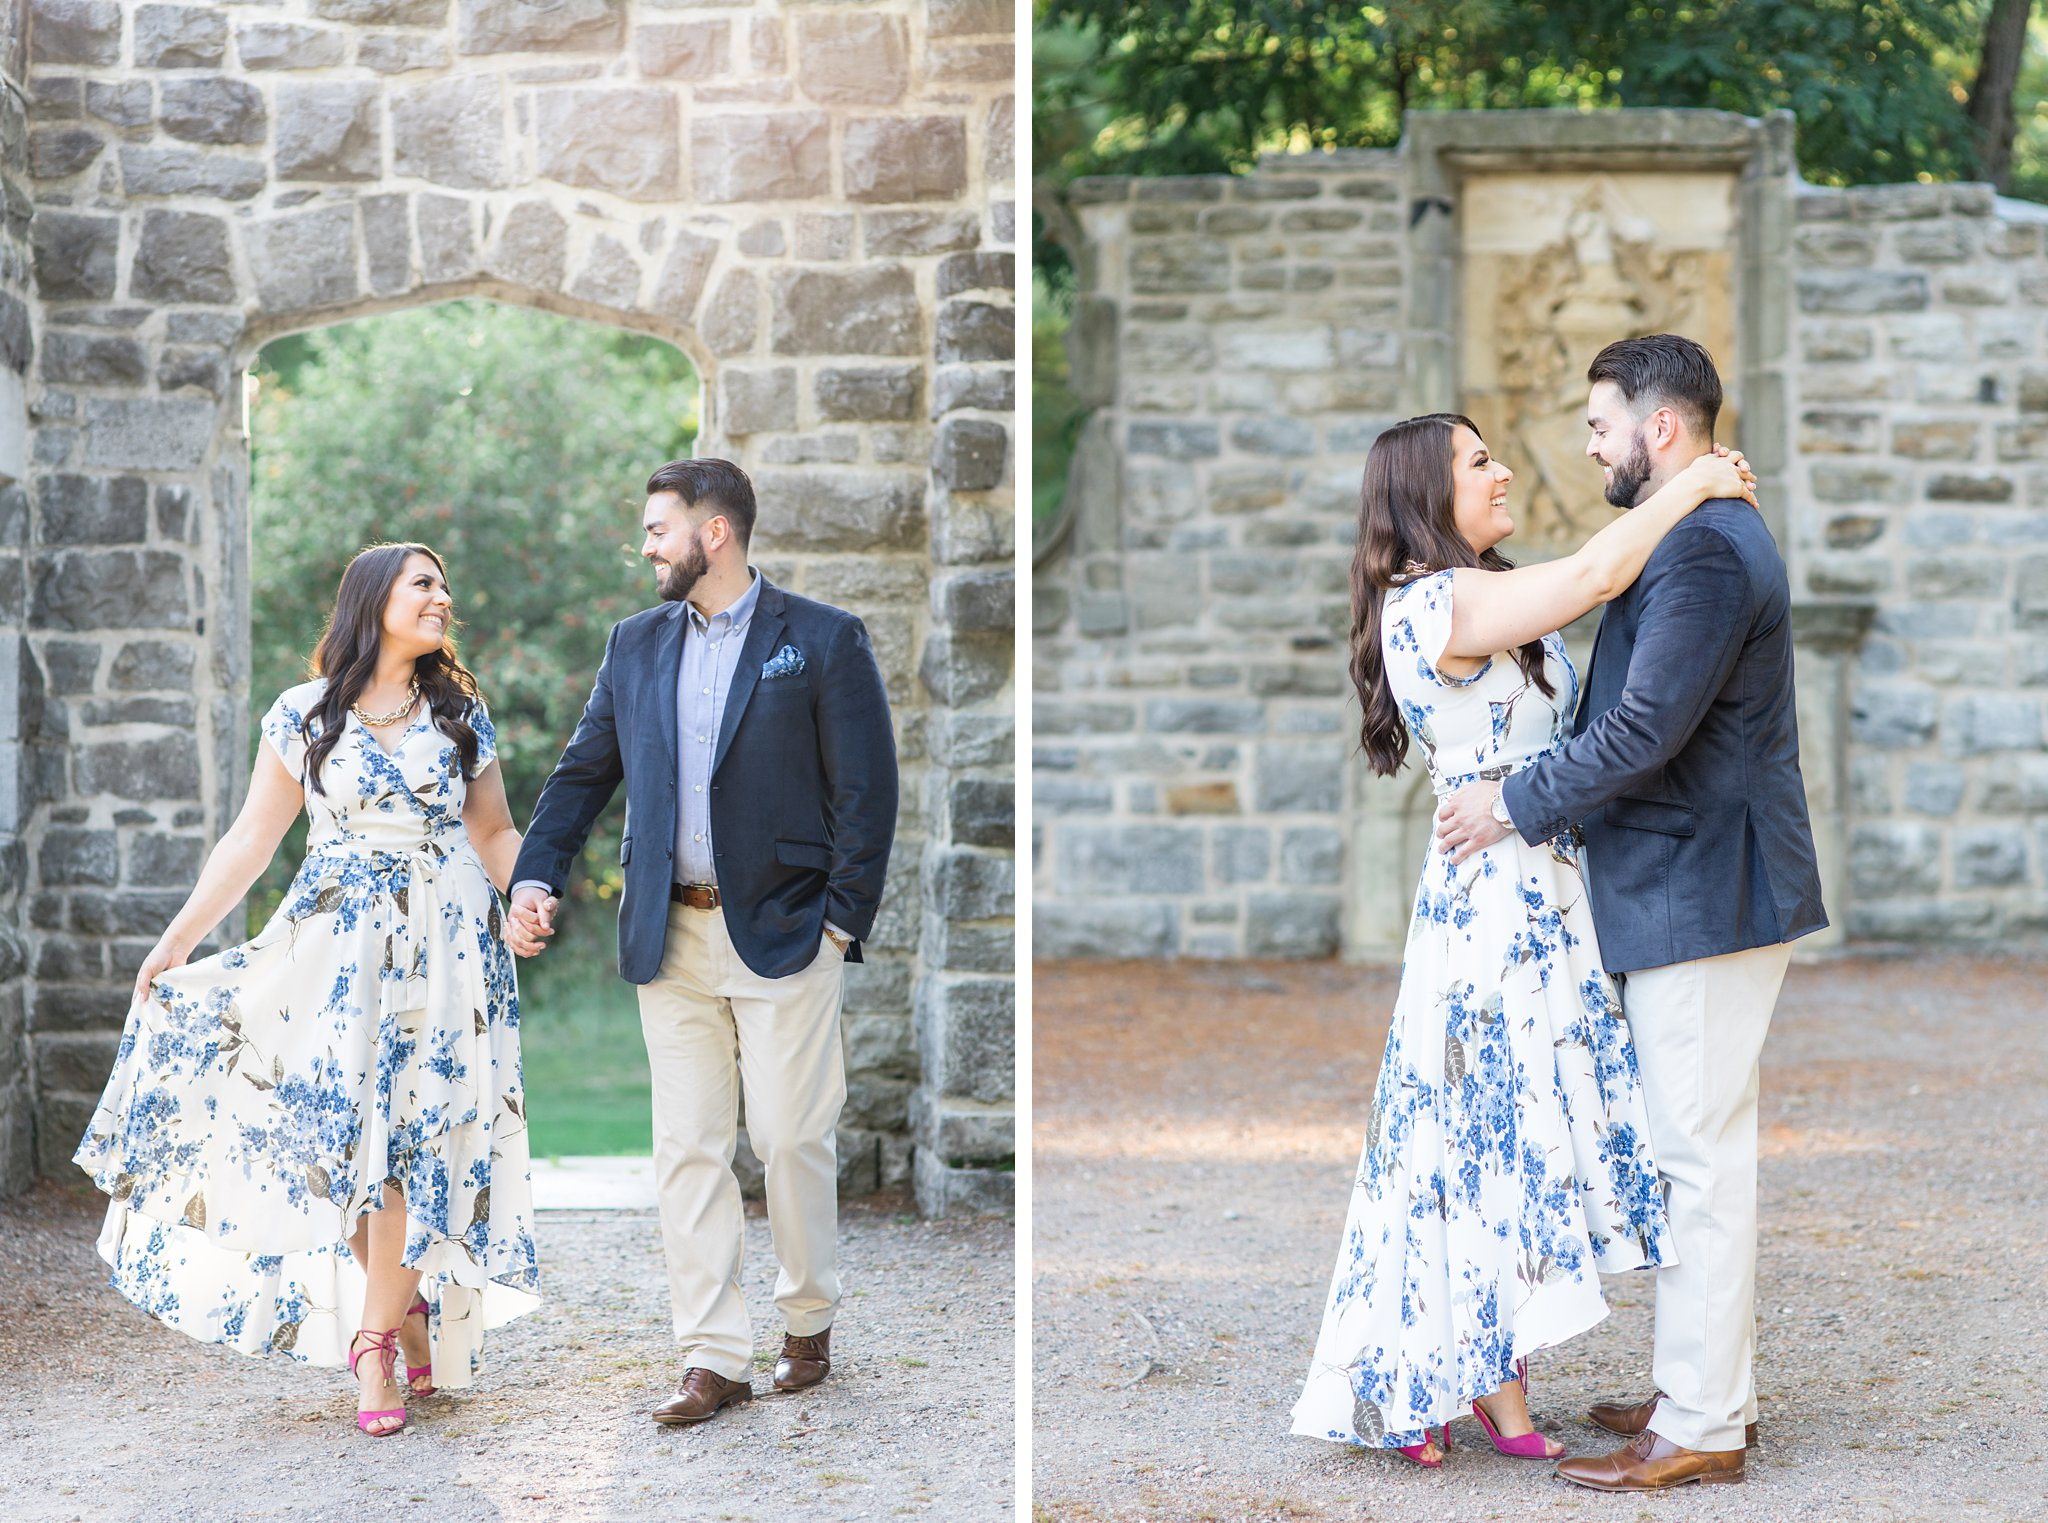 The ruins of Mackenzie King Estate, Mackenzie King Estate Engagement Photos by Amy Pinder Photography